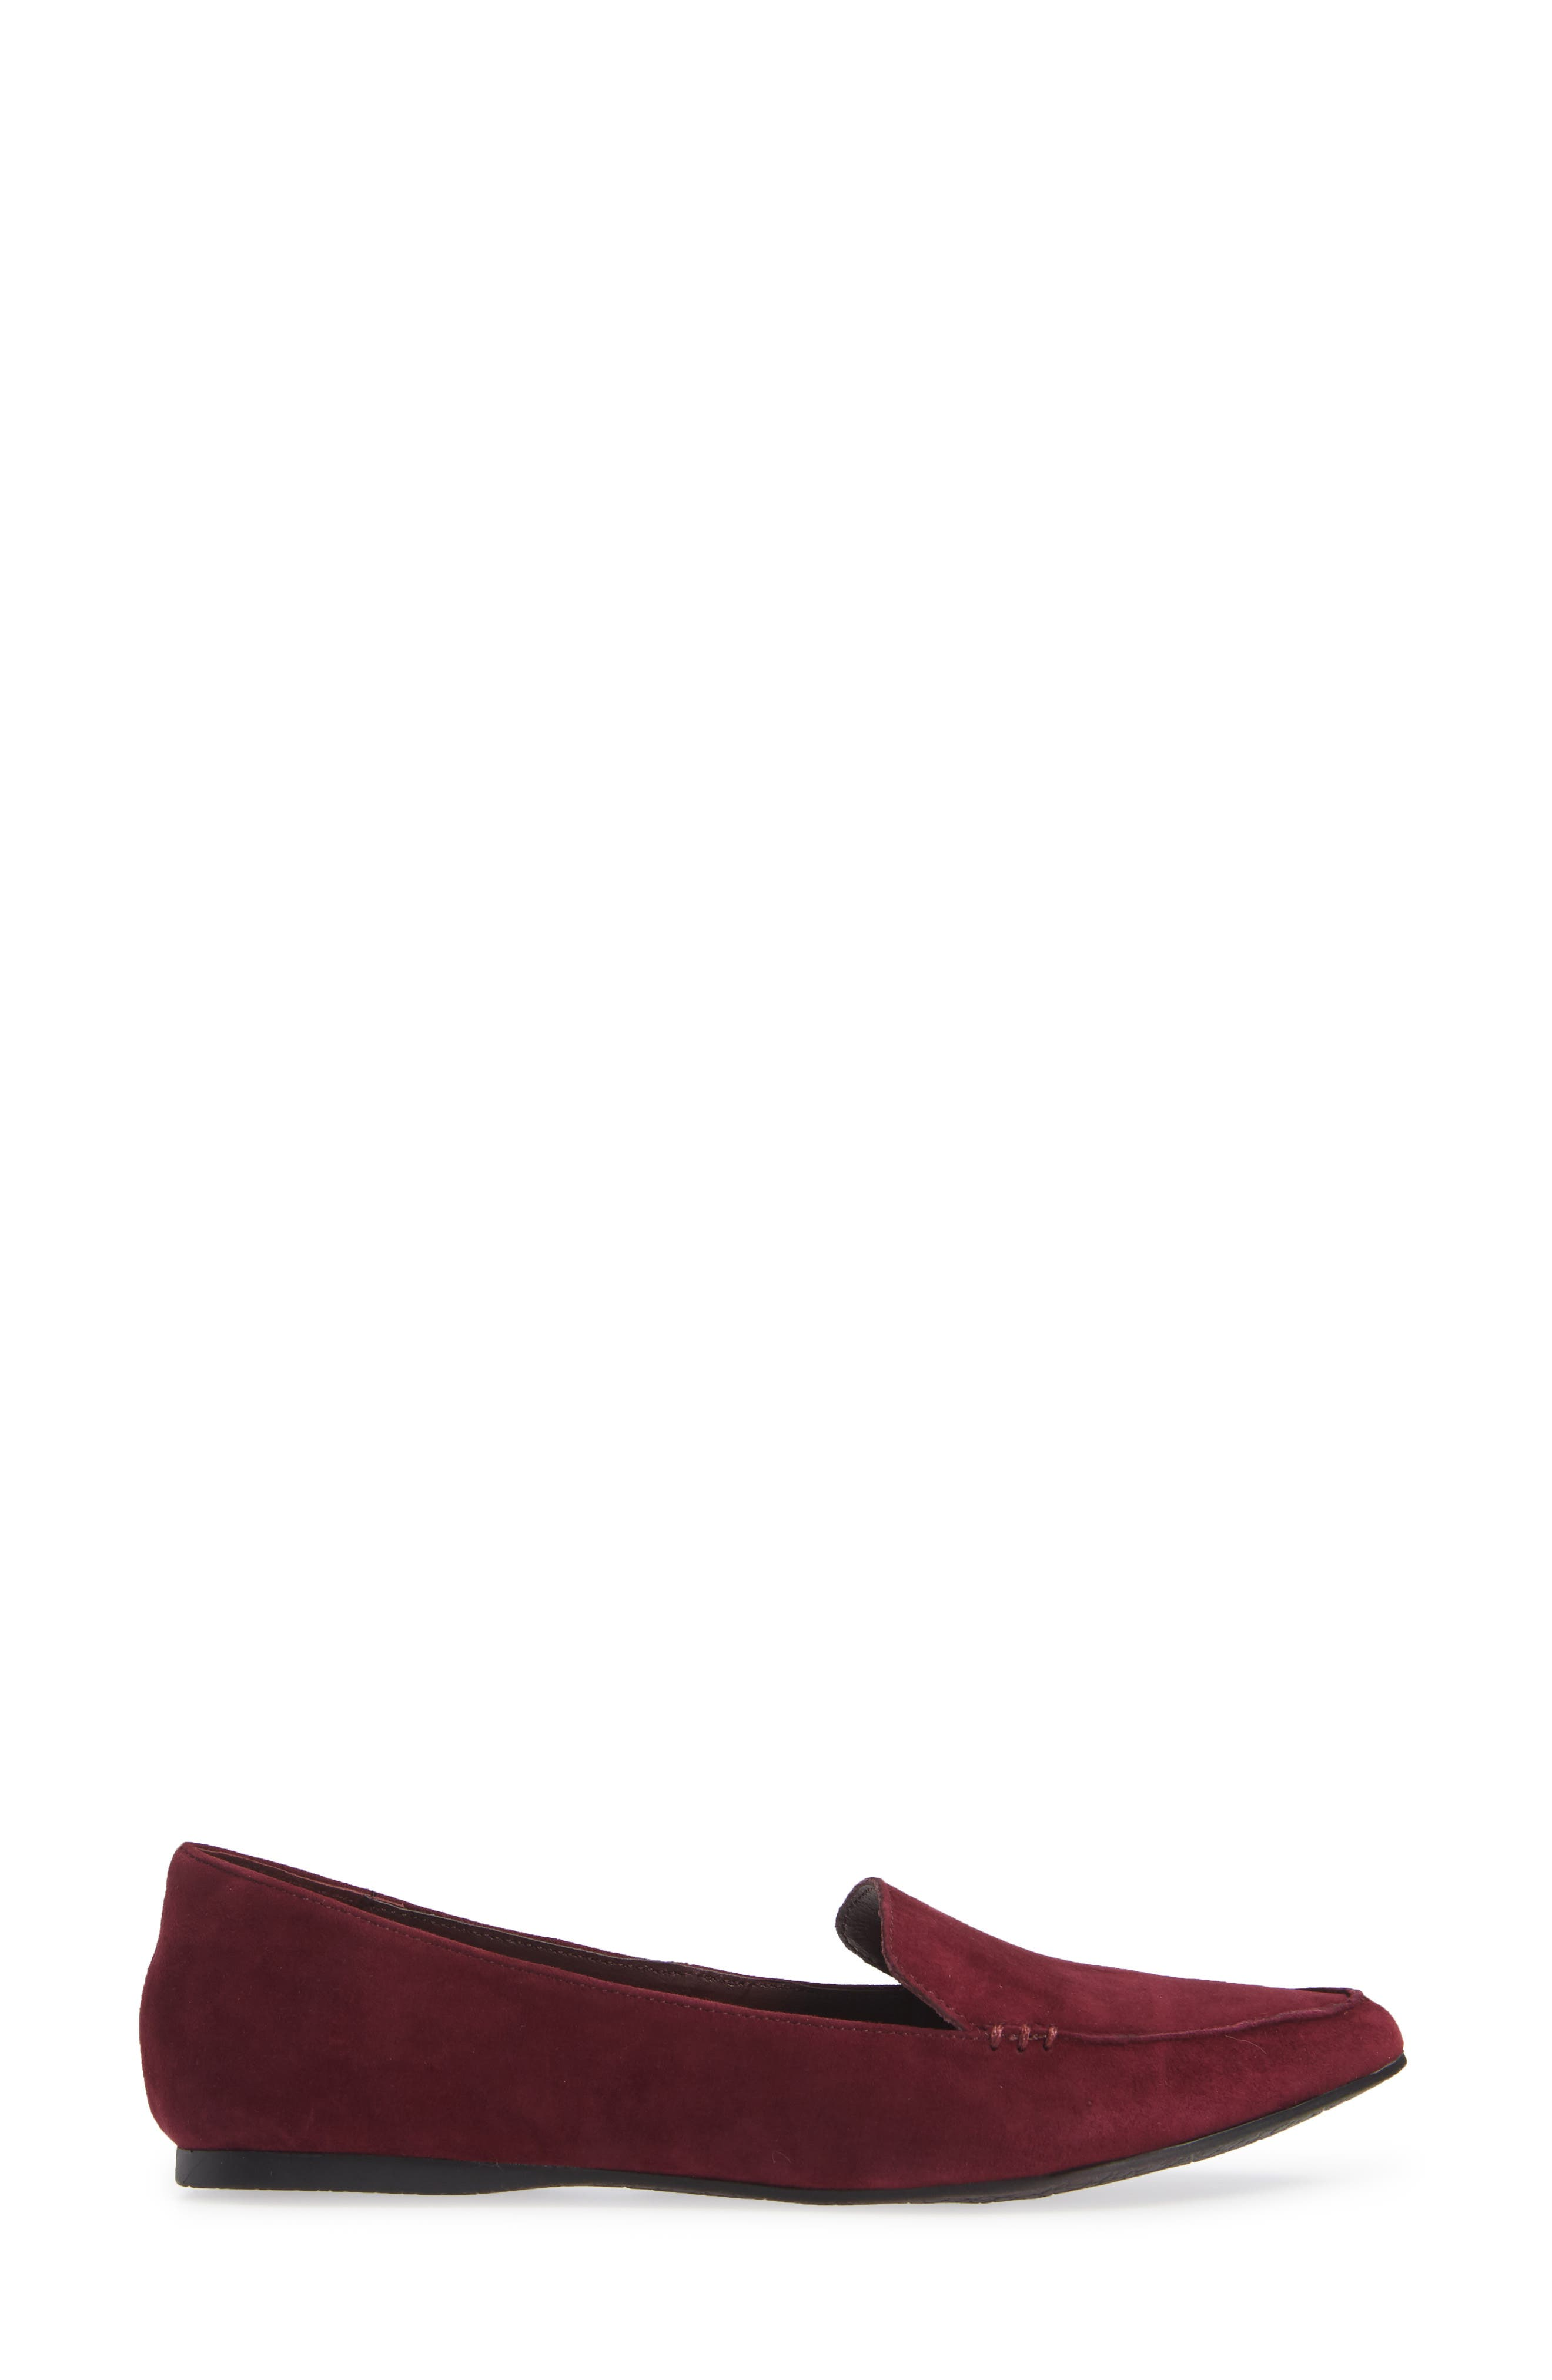 Feather Loafer Flat,                             Alternate thumbnail 3, color,                             BURGUNDY